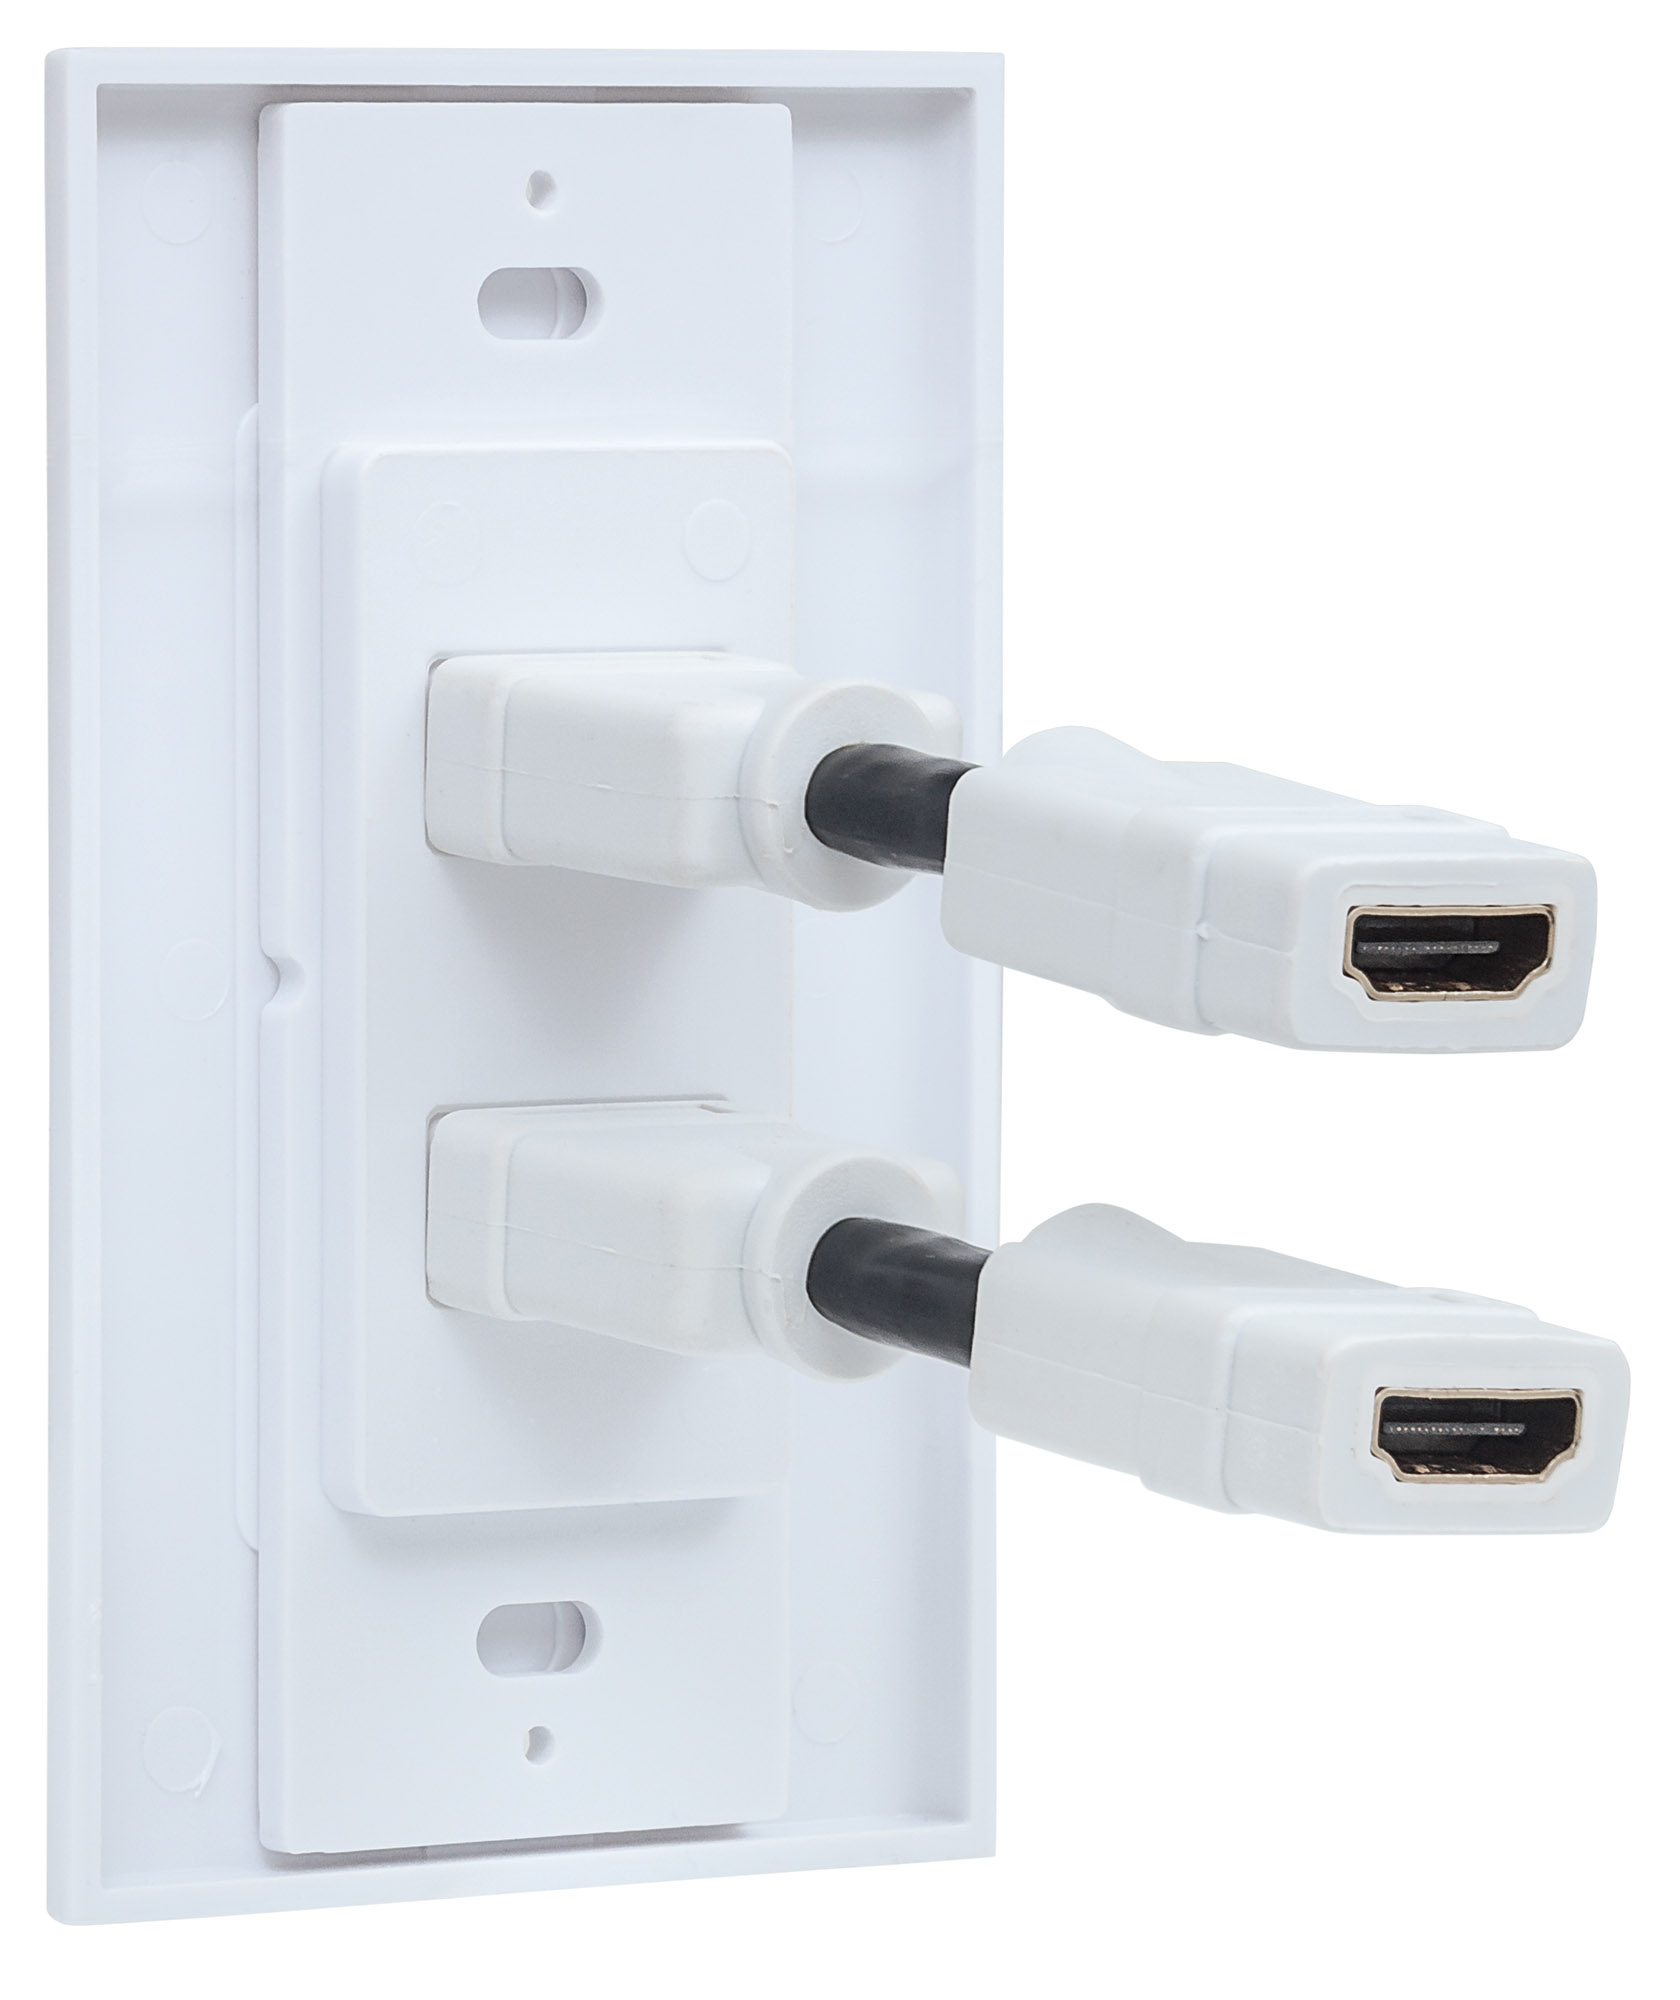 Two-Port HDMI Wallplate